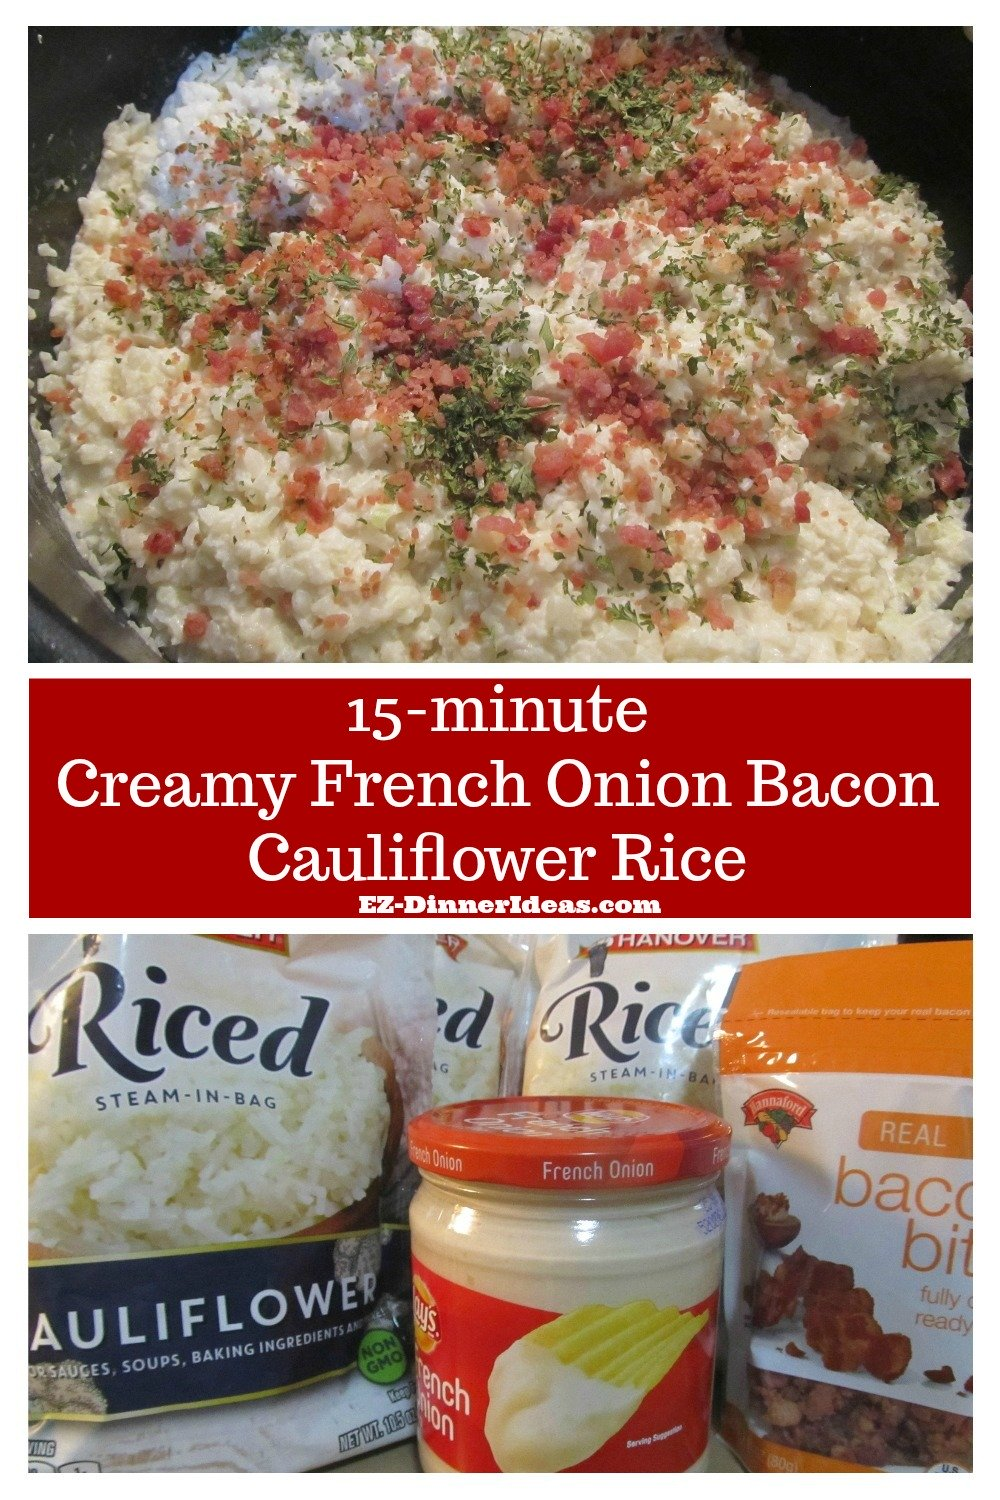 Recipe Cauliflower Rice | 15-Minute Creamy French Onion Bacon Cauliflower Rice